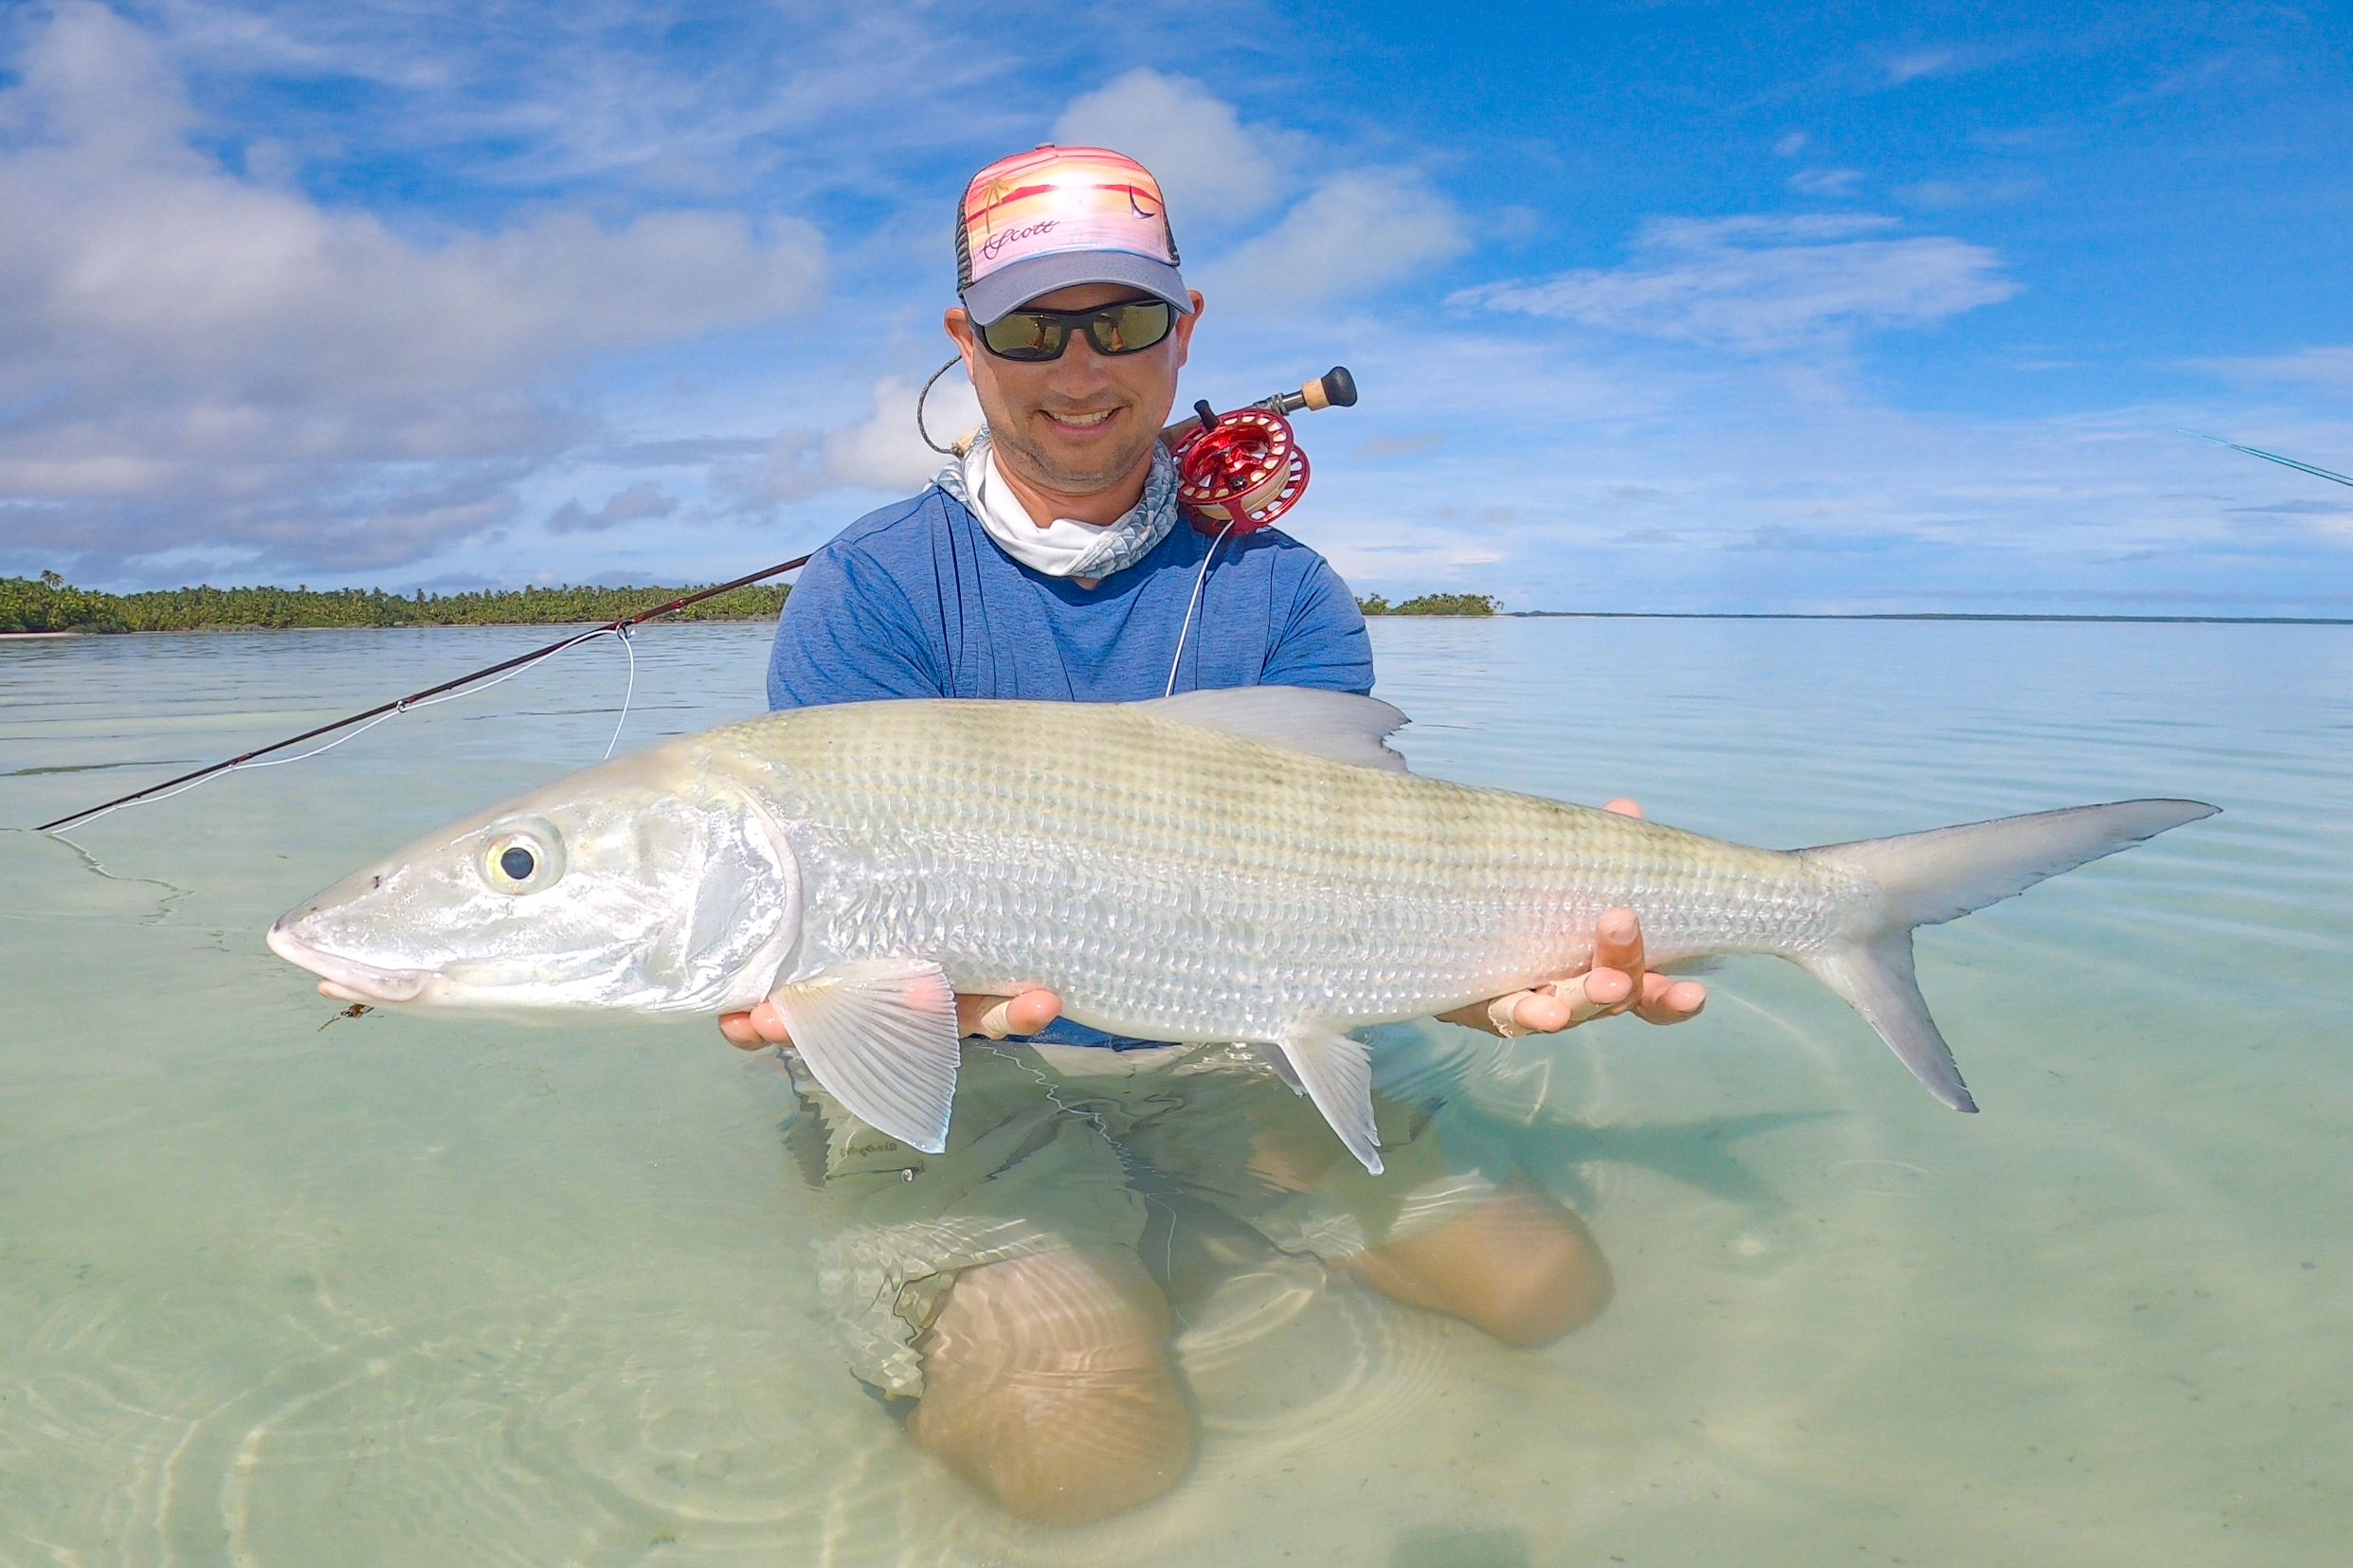 Virginia Fly Fishing Guide Fly Fishing Cocos Keeling Islands Bonefish Fly Fishing Fishing Guide Fish